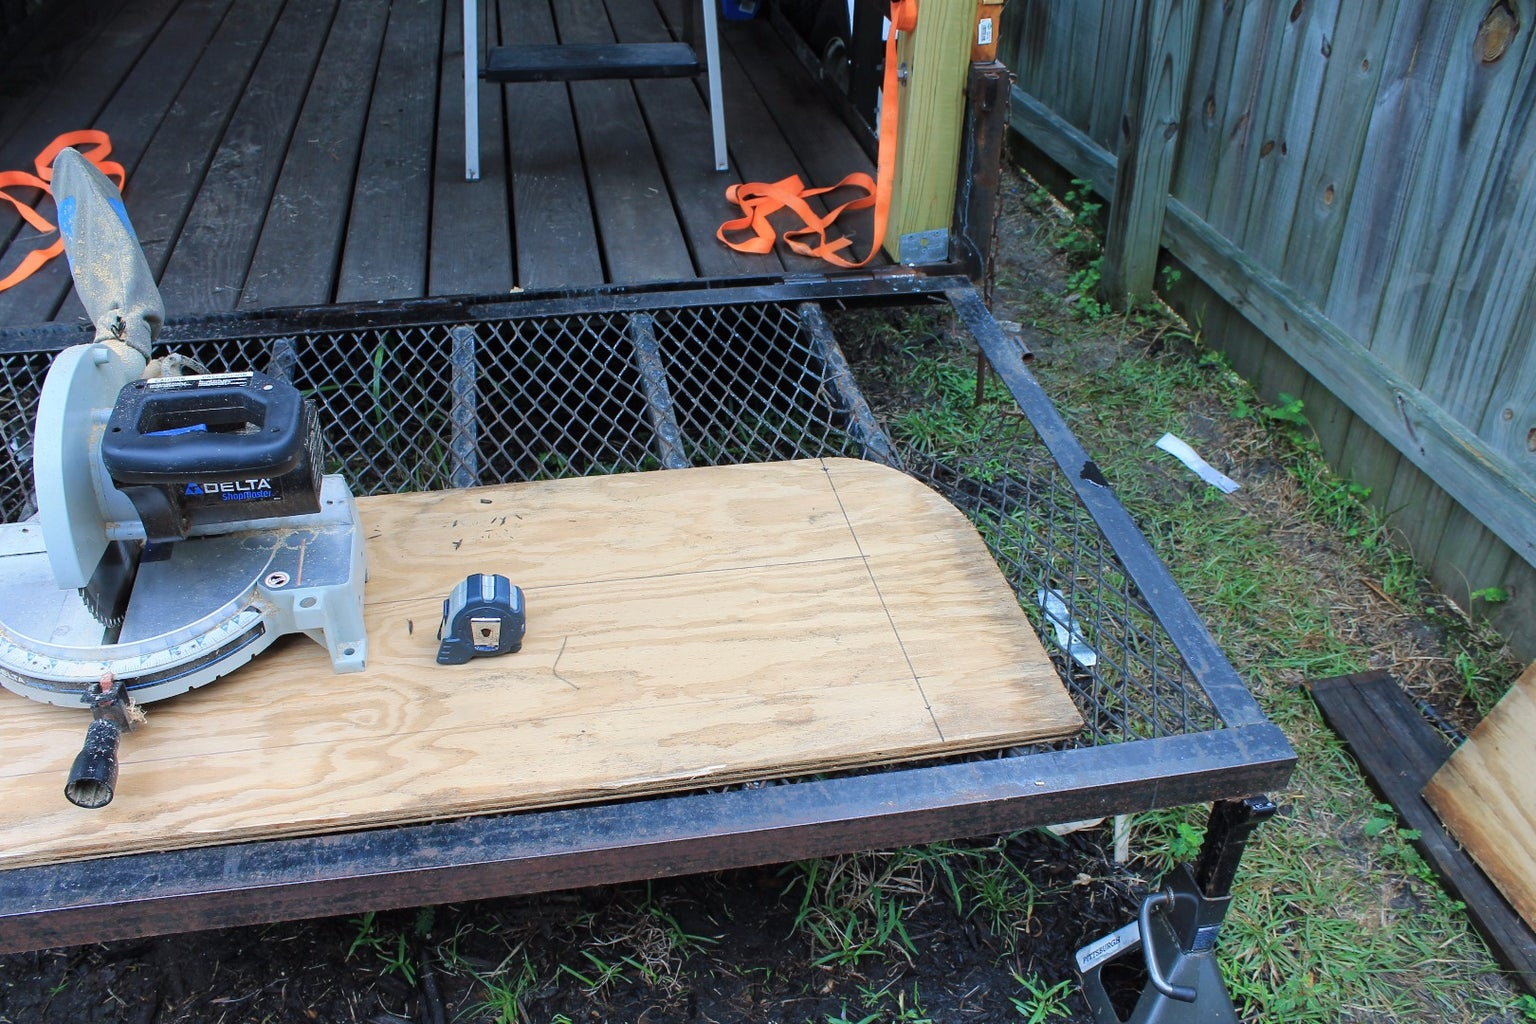 Replacing the Tailgate and Adding Stabilizing Jacks